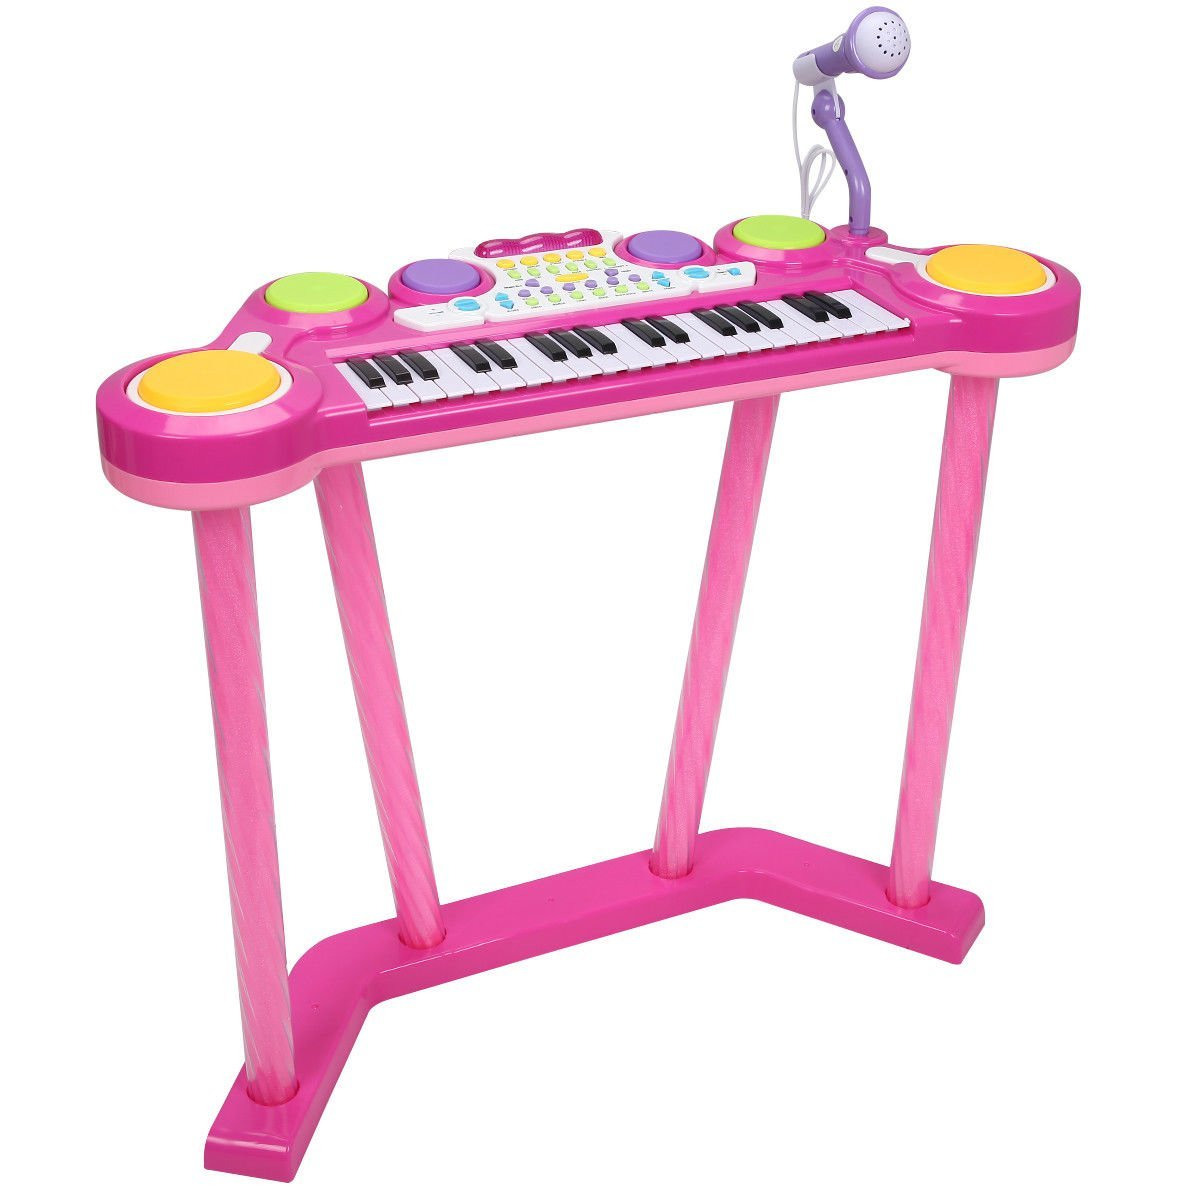 Costzon 2 In 1 Electronic Keyboard and Drum Musical 37-Key Toy Electronic Organ Piano and Drum with Microphone and Flashing Legs (Pink)